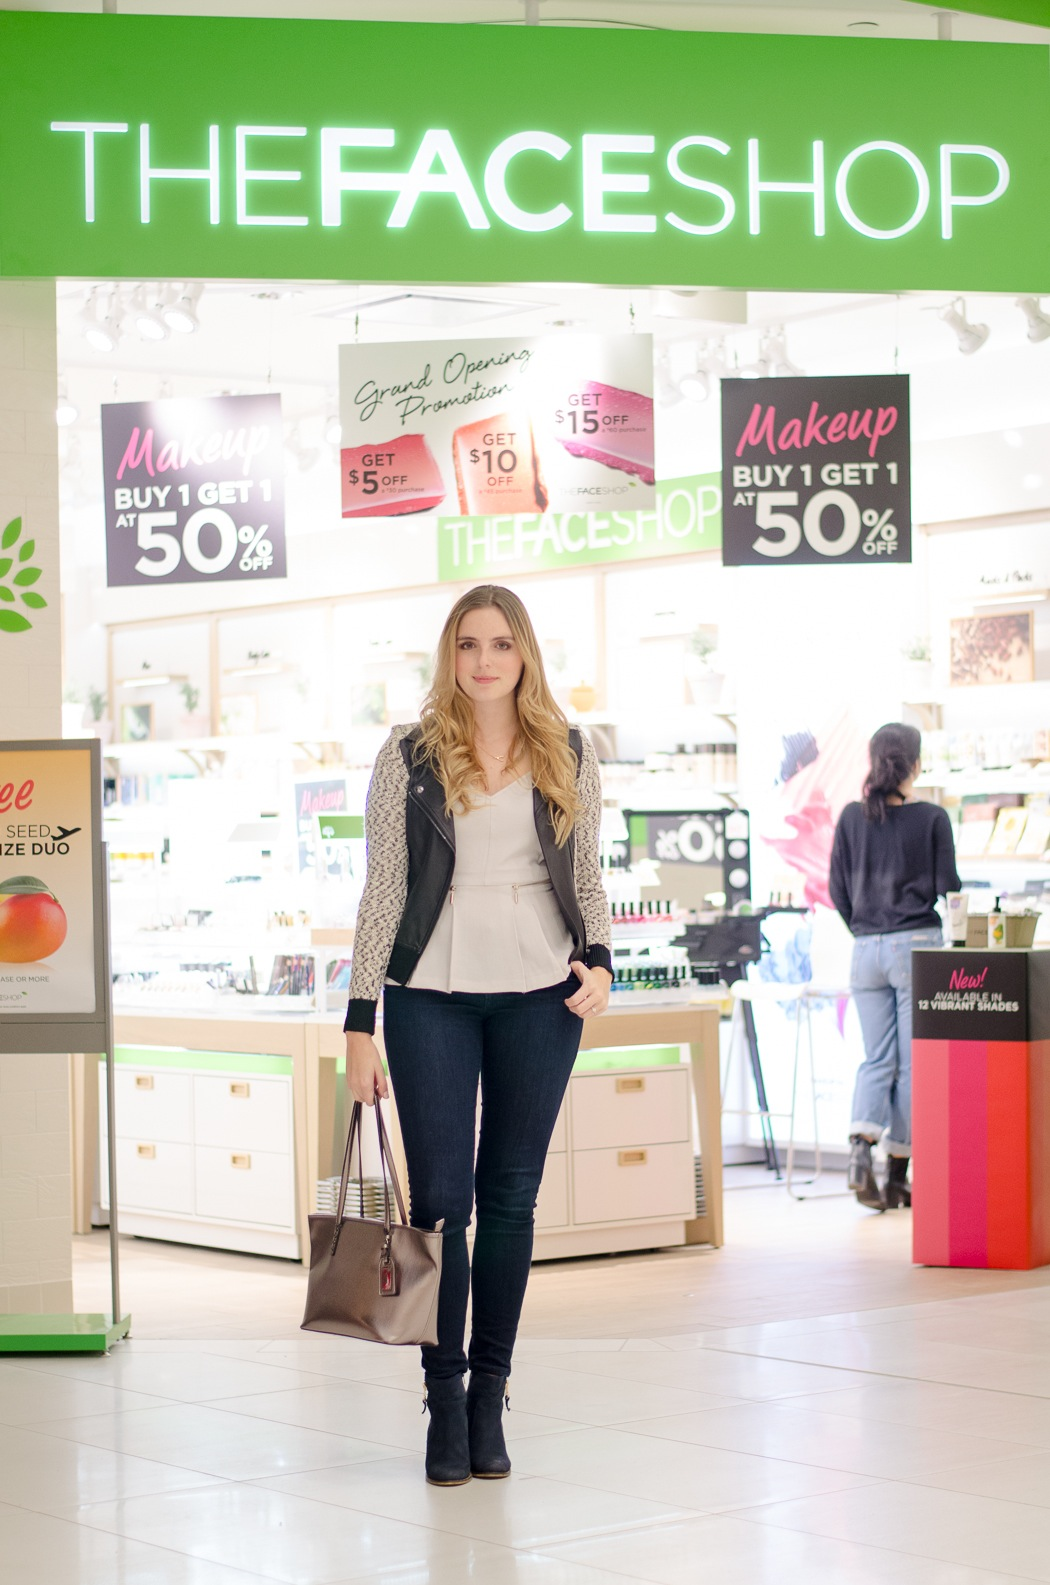 the urban umbrella style blog, vancouver style blog, vancouver style blogger, vancouver fashion blog, vancouver lifestyle blog, vancouver health blog, vancouver fitness blog, vancouver travel blog, canadian fashion blog, canadian style blog, canadian lifestyle blog, canadian health blog, canadian fitness blog, canadian travel blog, bree aylwin, blogger event hosting, the face shop, the face shop canada, inexpensive great skincare, great skincare, best health blogs, best travel blogs, top fashion blogs, top style blogs, top lifestyle blogs, top fitness blogs, top health blogs, top travel blogs, park royal